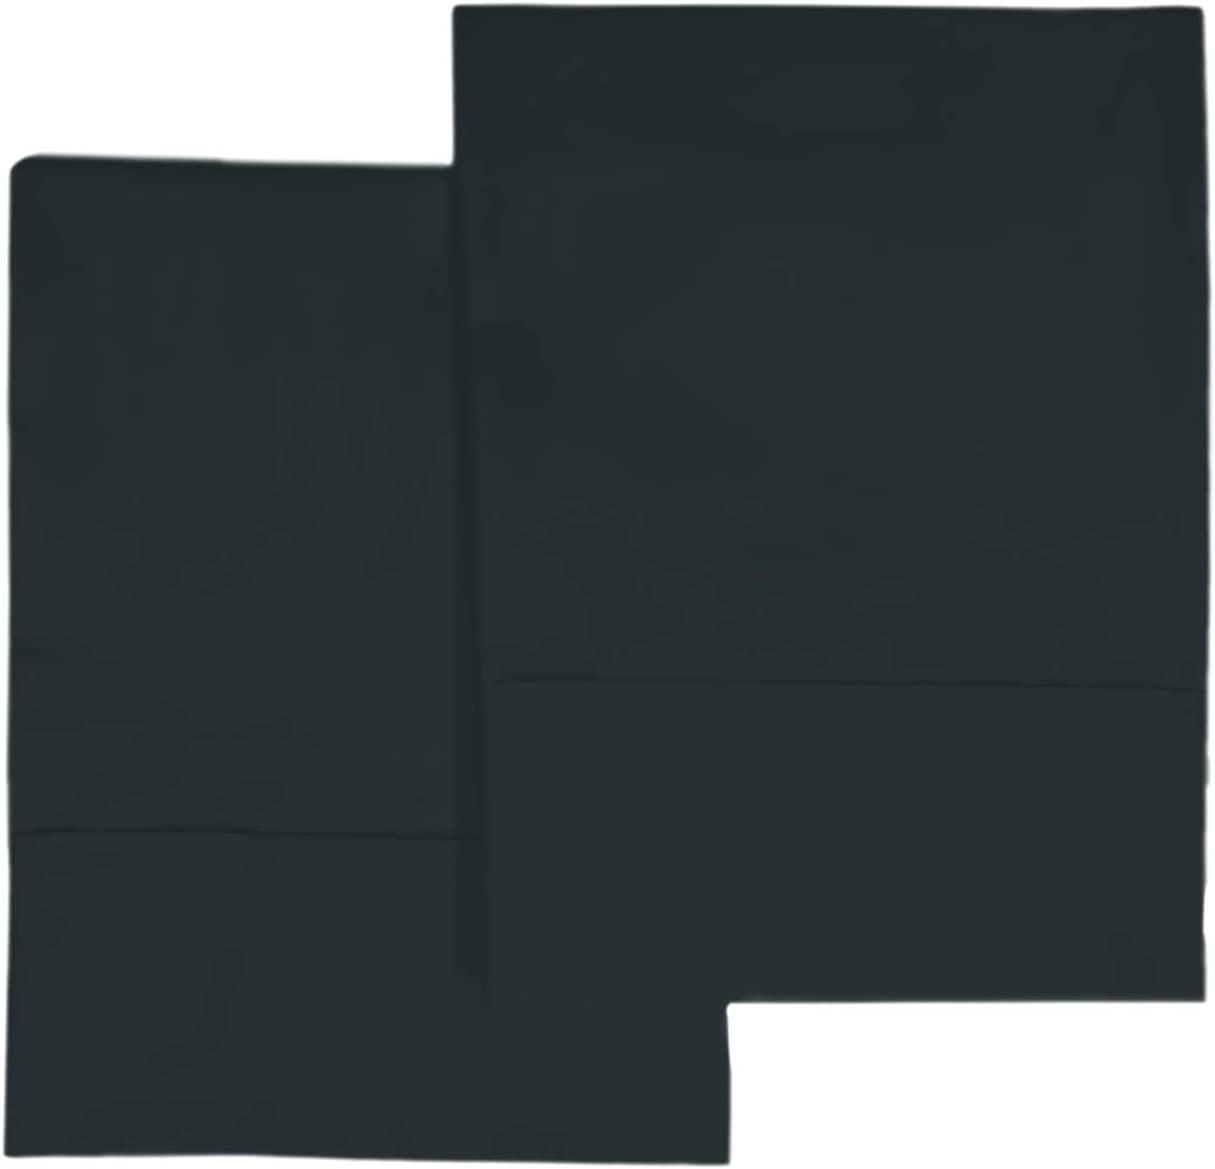 400 Thread Count Cotton King Pillowcases Midnight Black, 100% Long Staple Cotton Smooth Sateen Pillowcase with Stylish 4